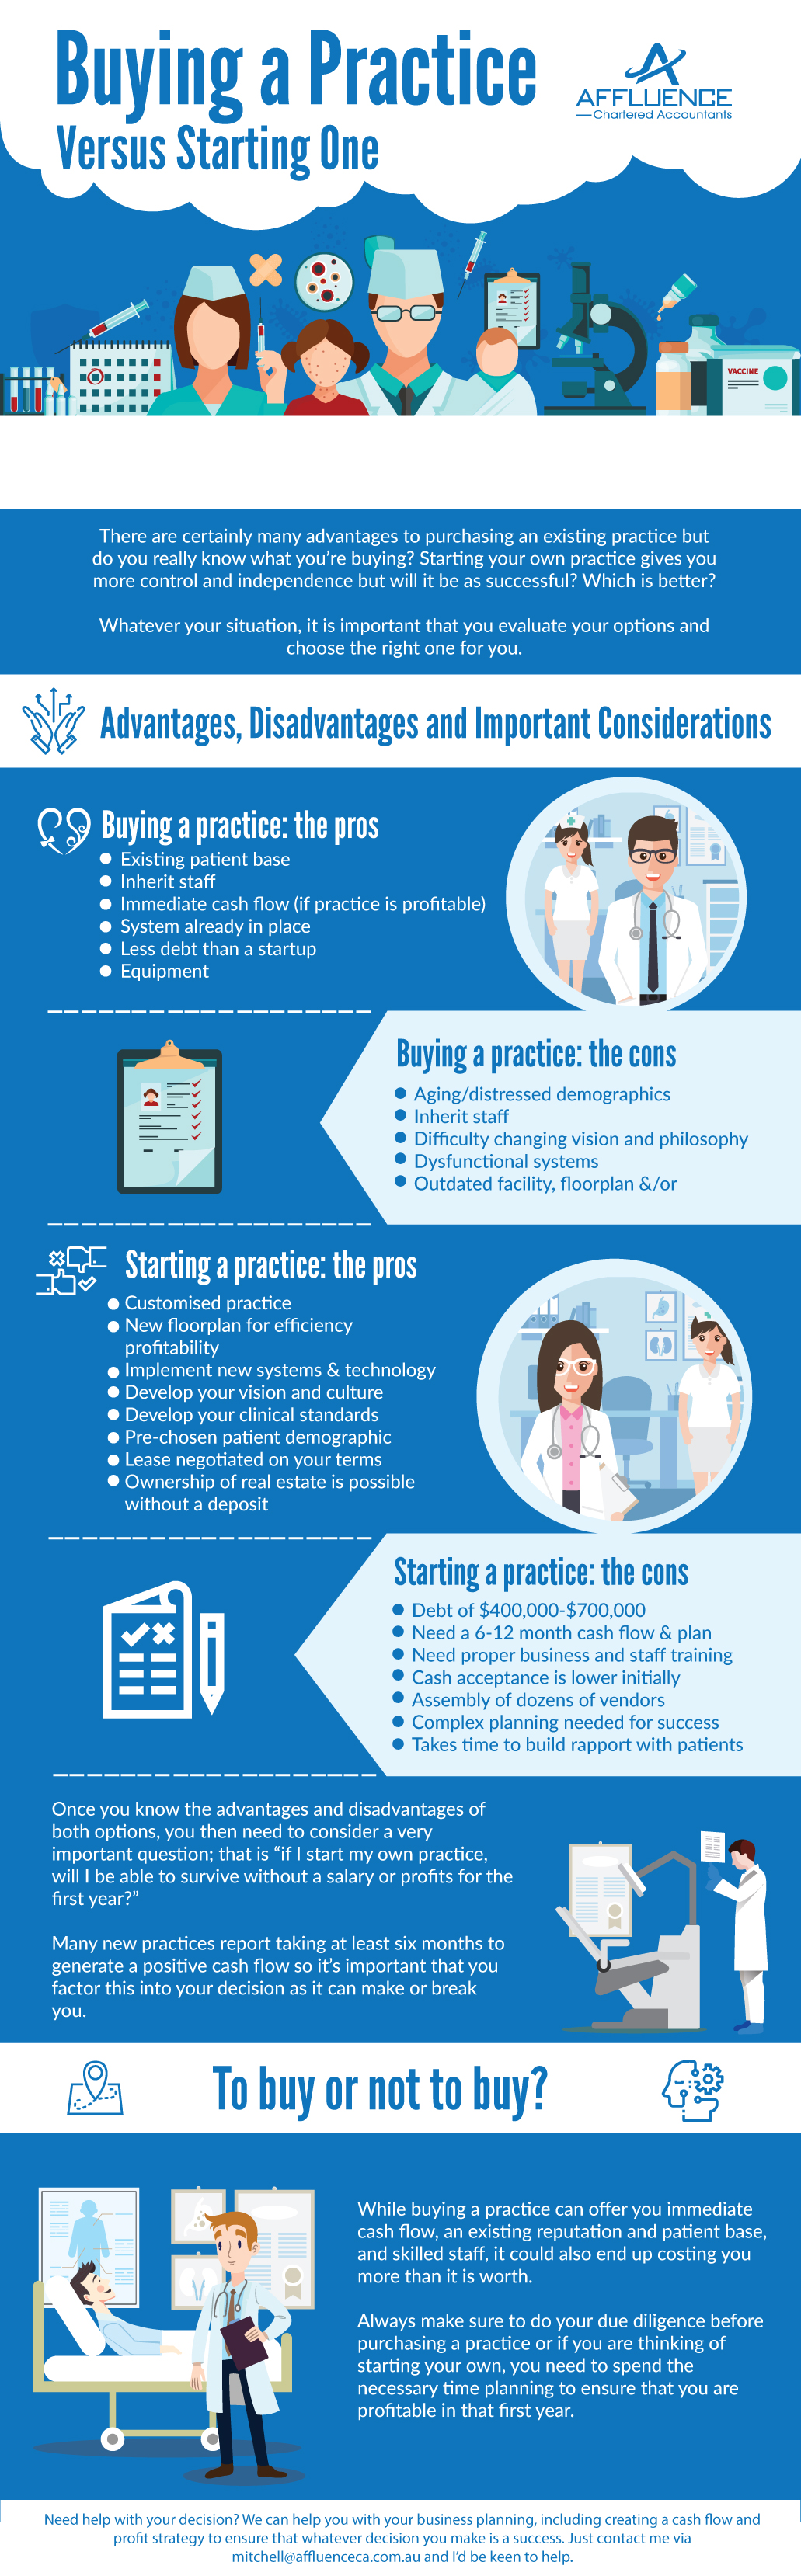 Buying a Medical/Dental Practice Vs Starting One - Affluence